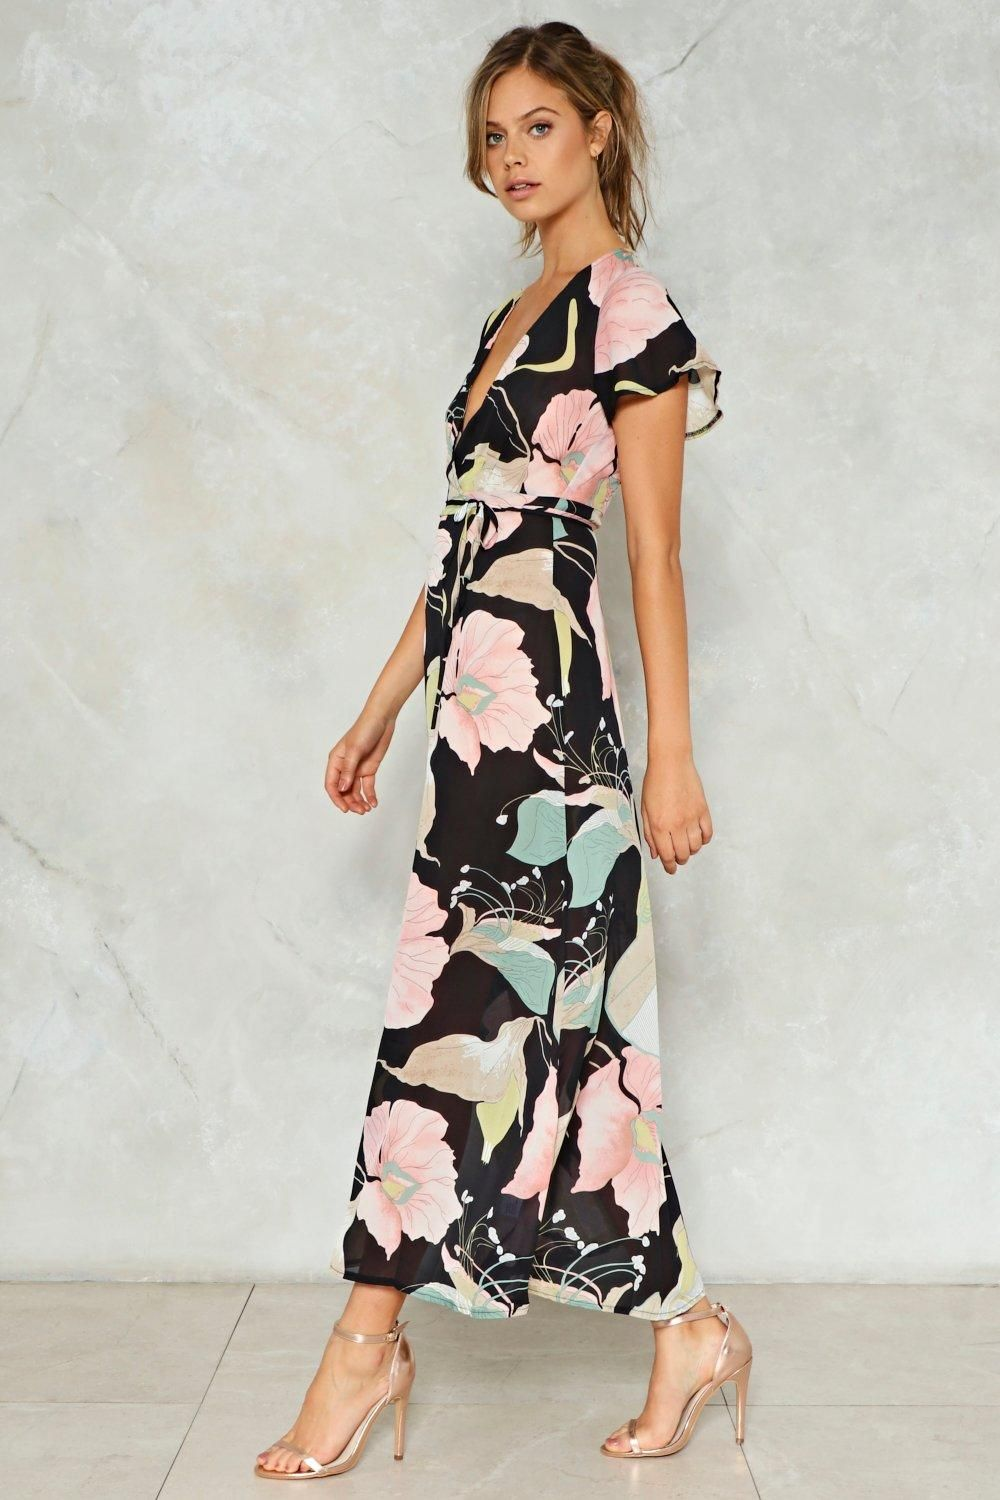 59eac0e6580 Get in the city mentality. This dress features a maxi silhouette